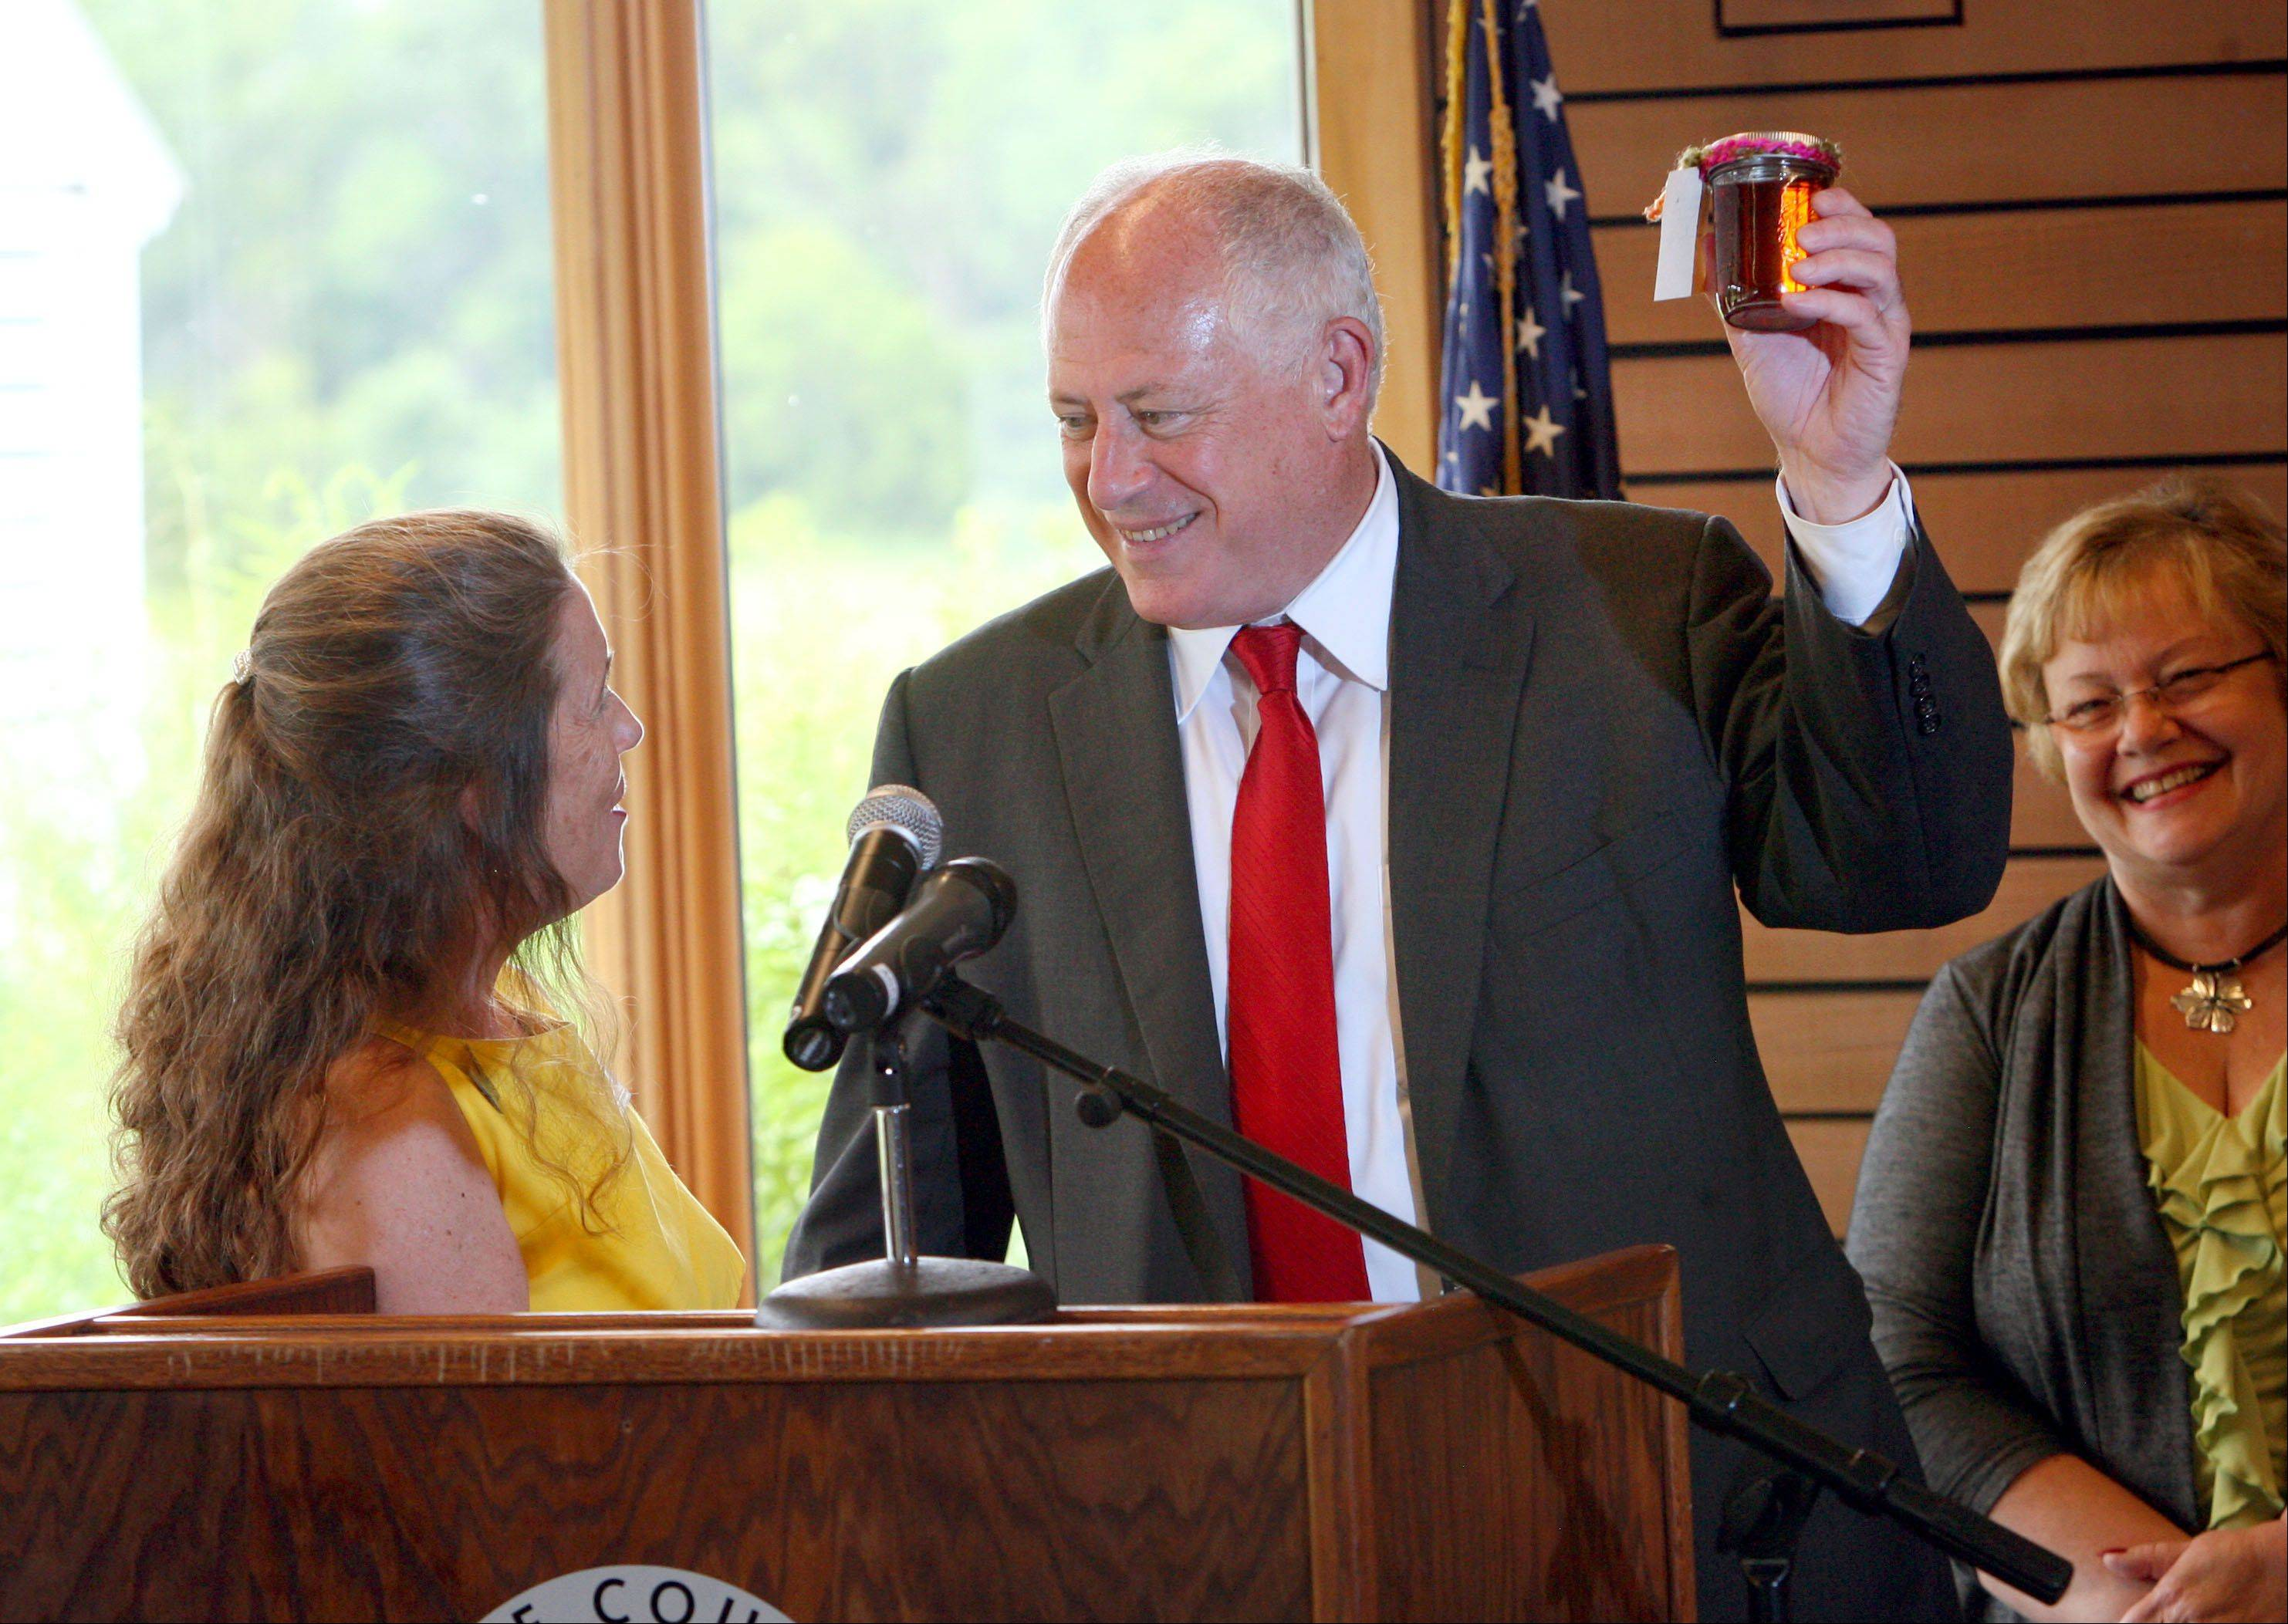 Gov. Pat Quinn, right, holds a jar of honey presented to him Thursday by Lake County Forest Preserve District President Ann Maine. Quinn was at Ryerson Woods Forest Preserve in Deerfield to sign measures involving conservation and the environment.